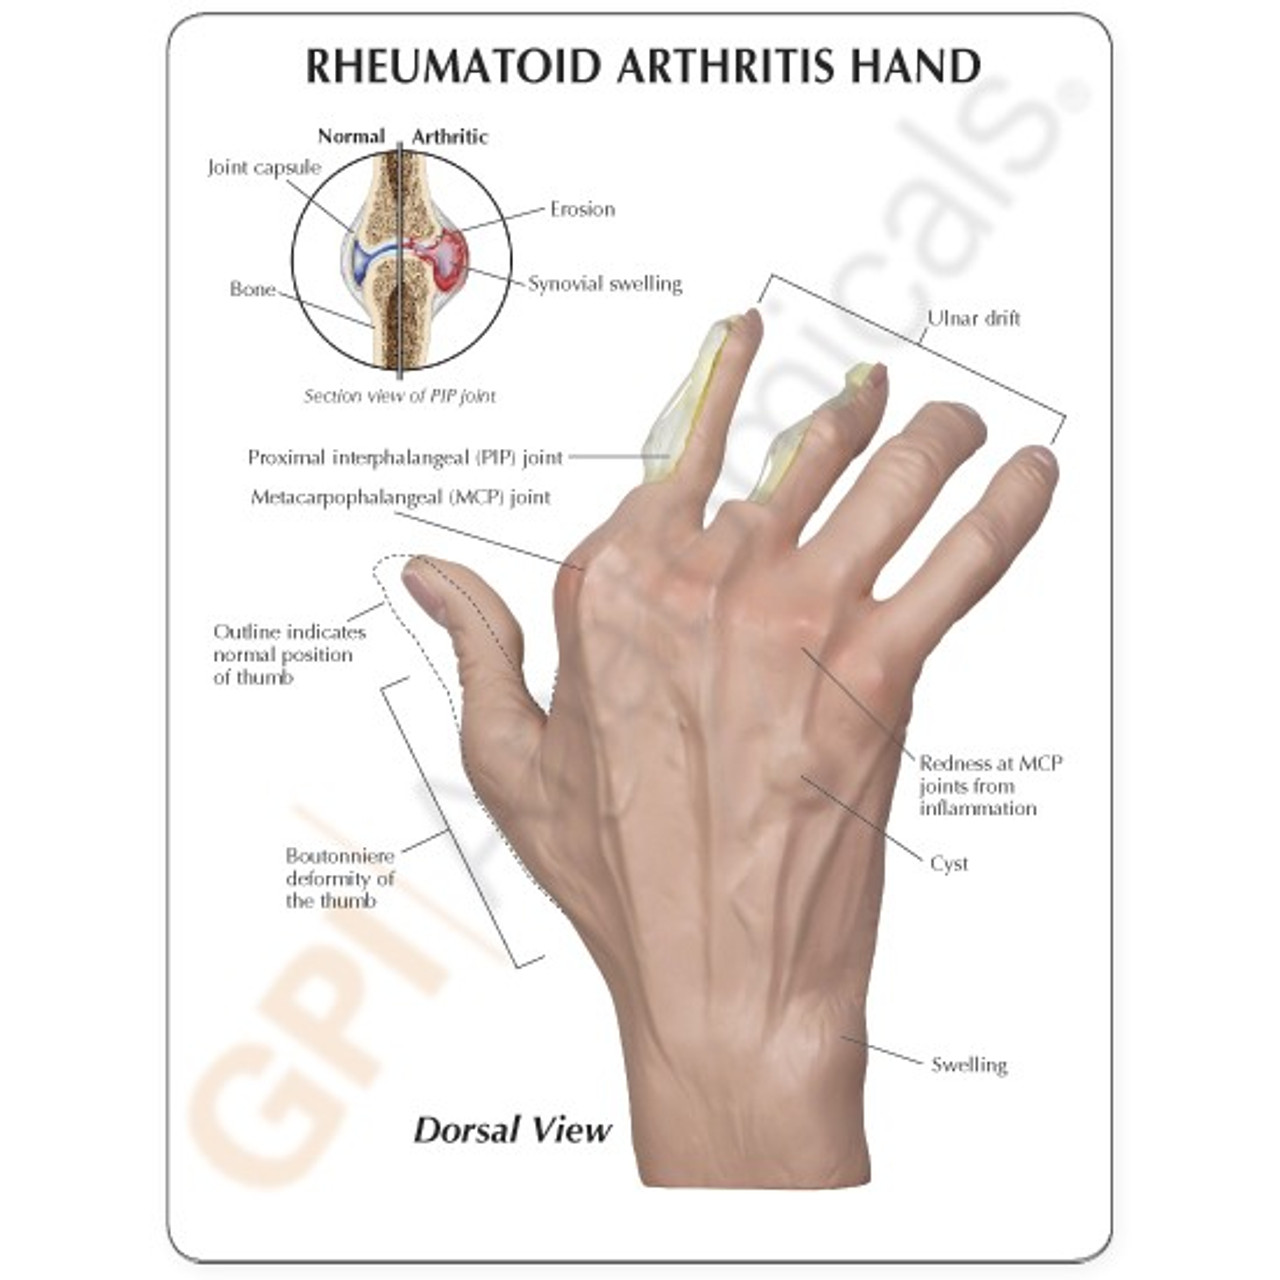 Hand Rheumatoid Arthritis Anatomical Model Description Card